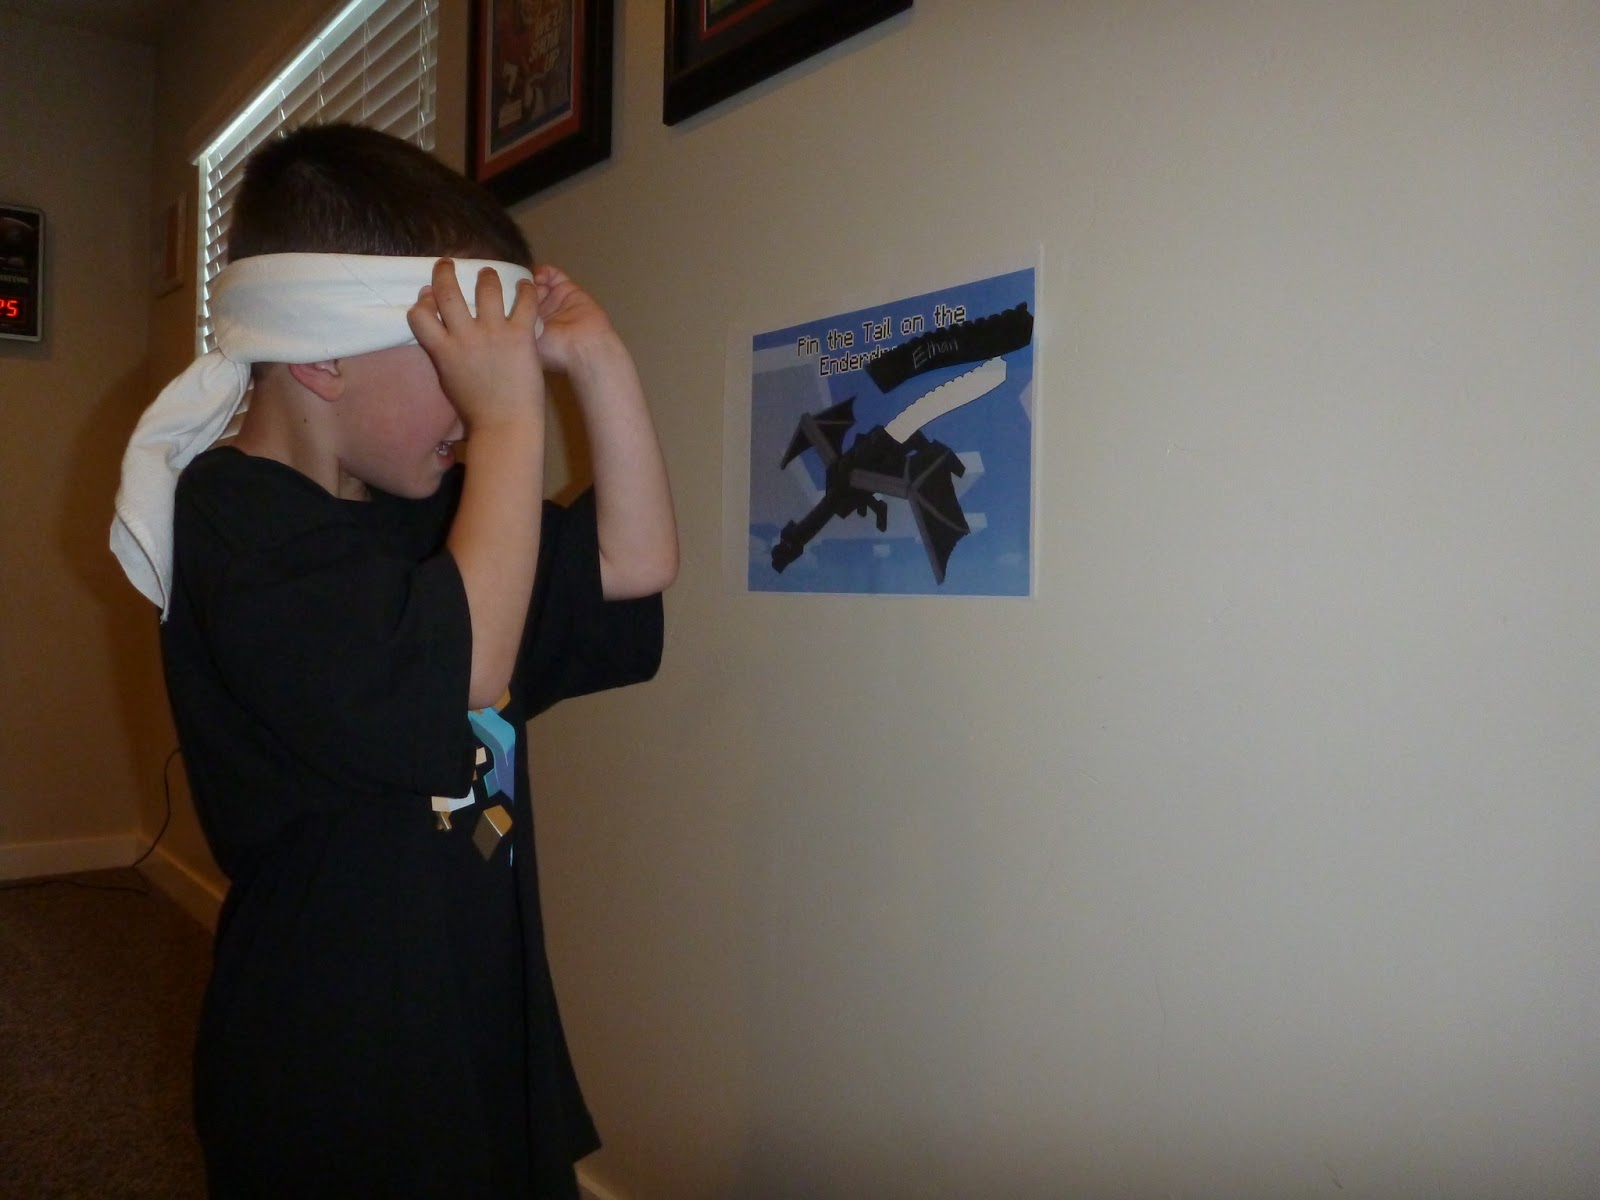 For the games we played pin the tail on the Enderdragon. The kids were